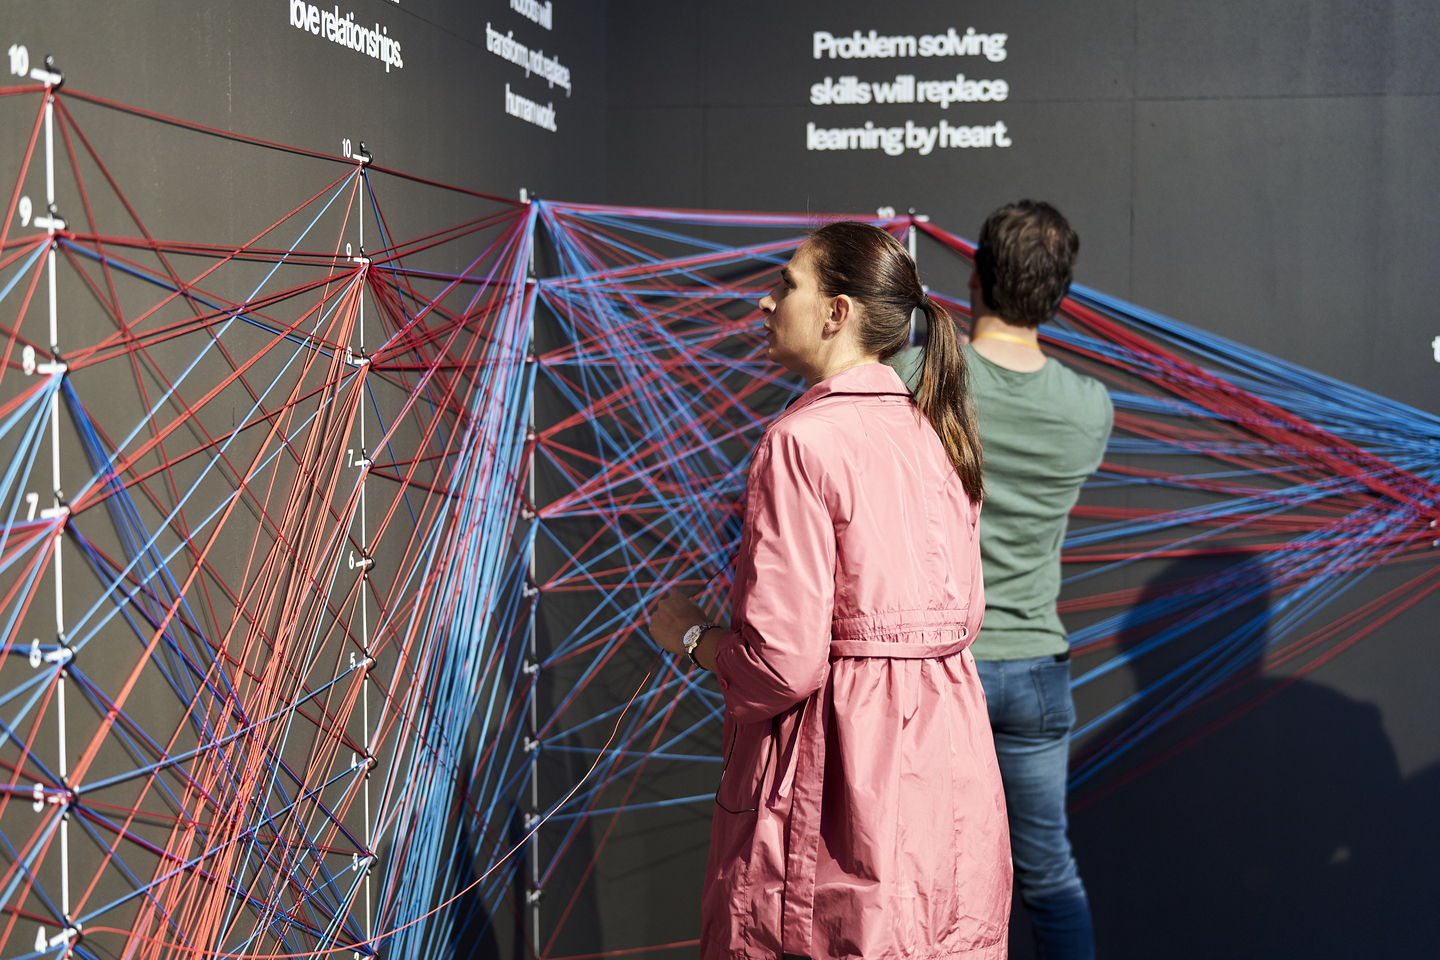 This interactive installation mapped attendee responses to questions about the future. Photo by Richard Pflaume/Daimler AG